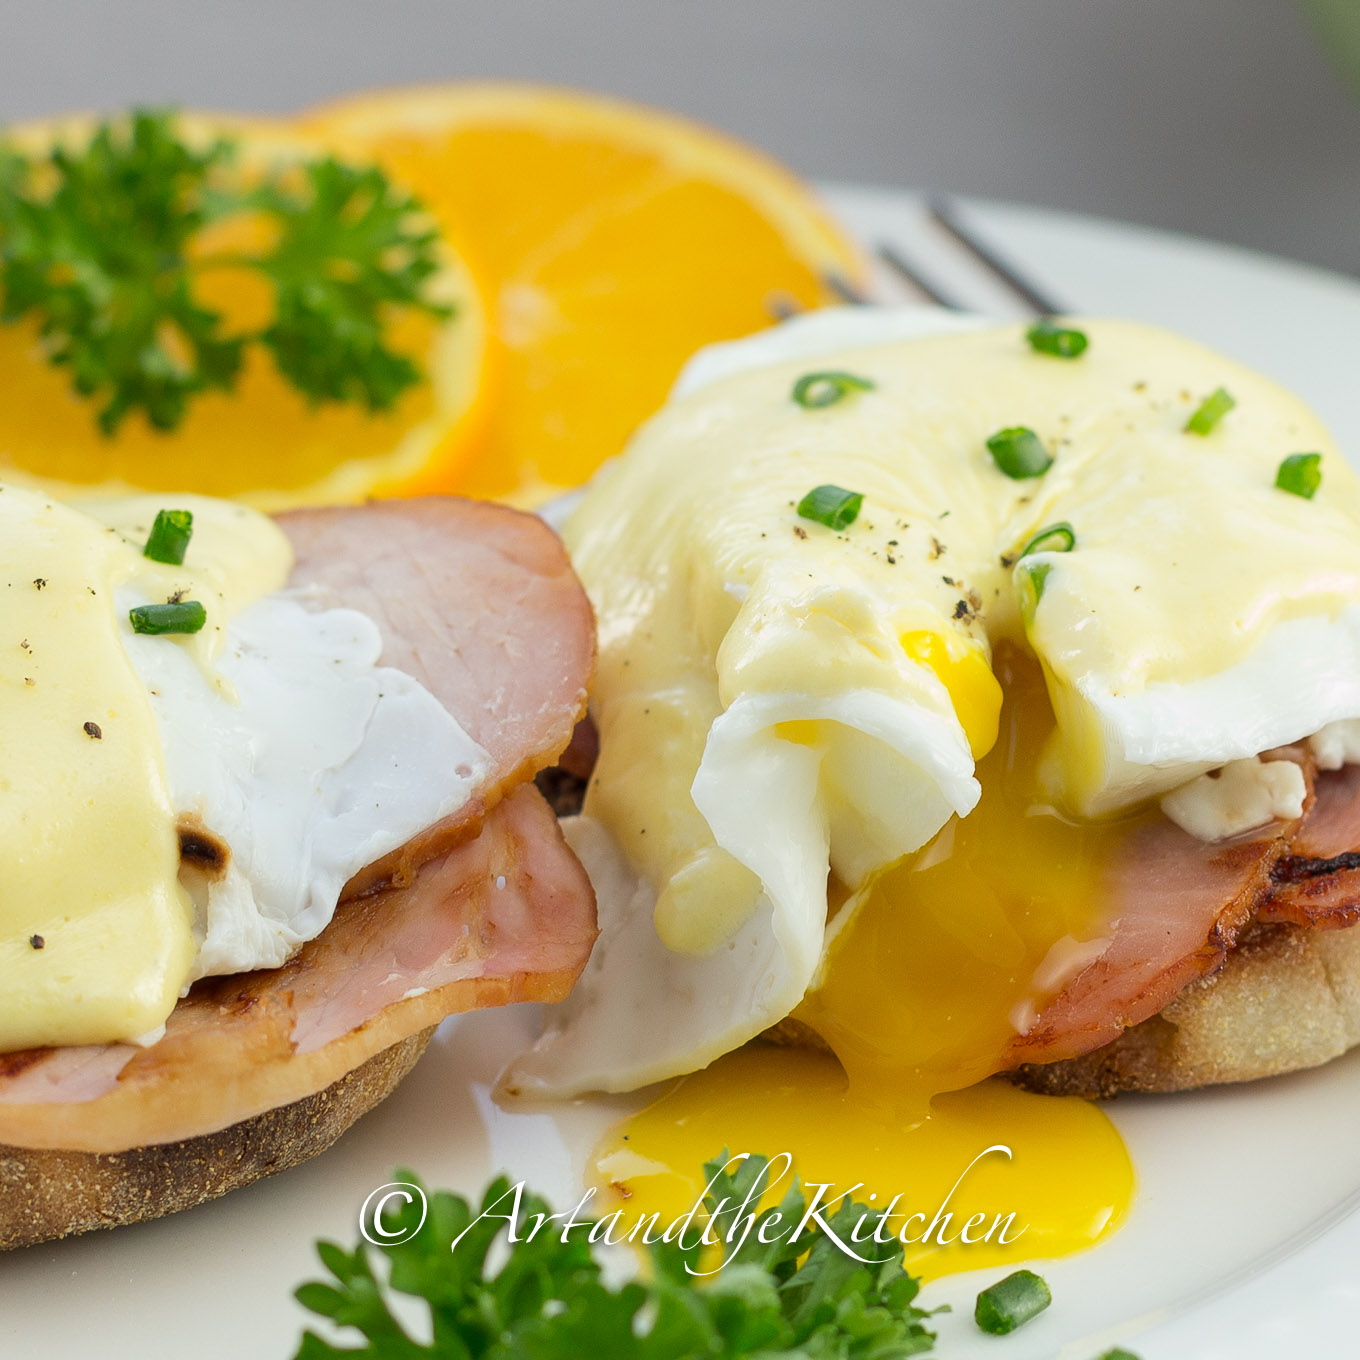 Eggs Benedict with ham, garnished with orange slices and parsley.